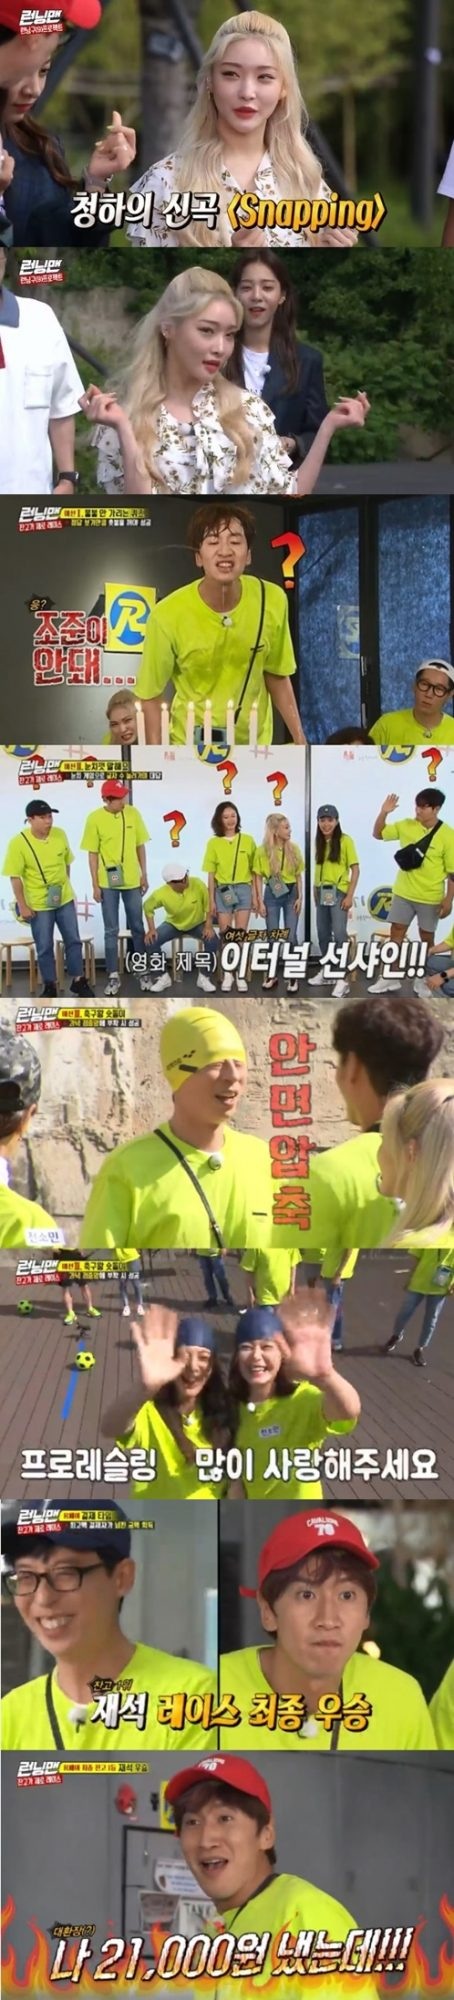 <p>SBS 'Running Man', this invariably 2049 target viewership in its time slot # 1 spot kept.</p><p>Viewership survey Agency Nielsen Korea, according to the last 23 days broadcast of 'Running Man'is per minute, with a maximum application rate of 8. 0%up to soared, and the main the advertising relationships of important indicator 2049 target viewership is 4. 1%(NCR furniture viewership Part 2 standard)was recorded. This in MBC 'The King', KBS2 'his ears are donkey ears' etc and same time 1 ranked. Average viewership is part 1 of 5. 1%, 2 parts of 7%(NCR furniture viewership standards)were.</p><p>This day in the broadcast 'balance is zero race'is decorated with a close friend of singer young and actor Seol In-ah as a guest were together. This time in the race, the members of each of the 3 million original, which contains The Mission phone receives a payment. Health food restaurants and around food Payment you want as long as 'R page'to a non-public Payment and Payment after the final amount if in every round The Mission in foraging bracelet with one person the best to serve people who lack the amount split in the Payment should be. Just the final amount of overflows if the top amount to embellish a person difference earn all of it.</p><p>Members from the start a keen eye location operation waged and, in the last round of the 'humiliation hat'up you should get a penalty here. Unexpected big laugh in the middle, the Payment order is that each of the members of the extreme noticed the fight as a laugh, I found myself in. This scene is per minute, with a maximum application rate of 8. 0%of the record and 'best 1 minute'is accounted for.</p><p>Seol In-ah is a round through a large Payment to the end 'grass and forage bracelet'water bomb penalty was. This a The Last The Mission in full property to all the strategies unfolded, but the Fortune 1000 want a lot more like the strategy to wrote Yoo Jae-Suk in wheat to water bomb suit was brought. Support analysis with Seol In-ah '